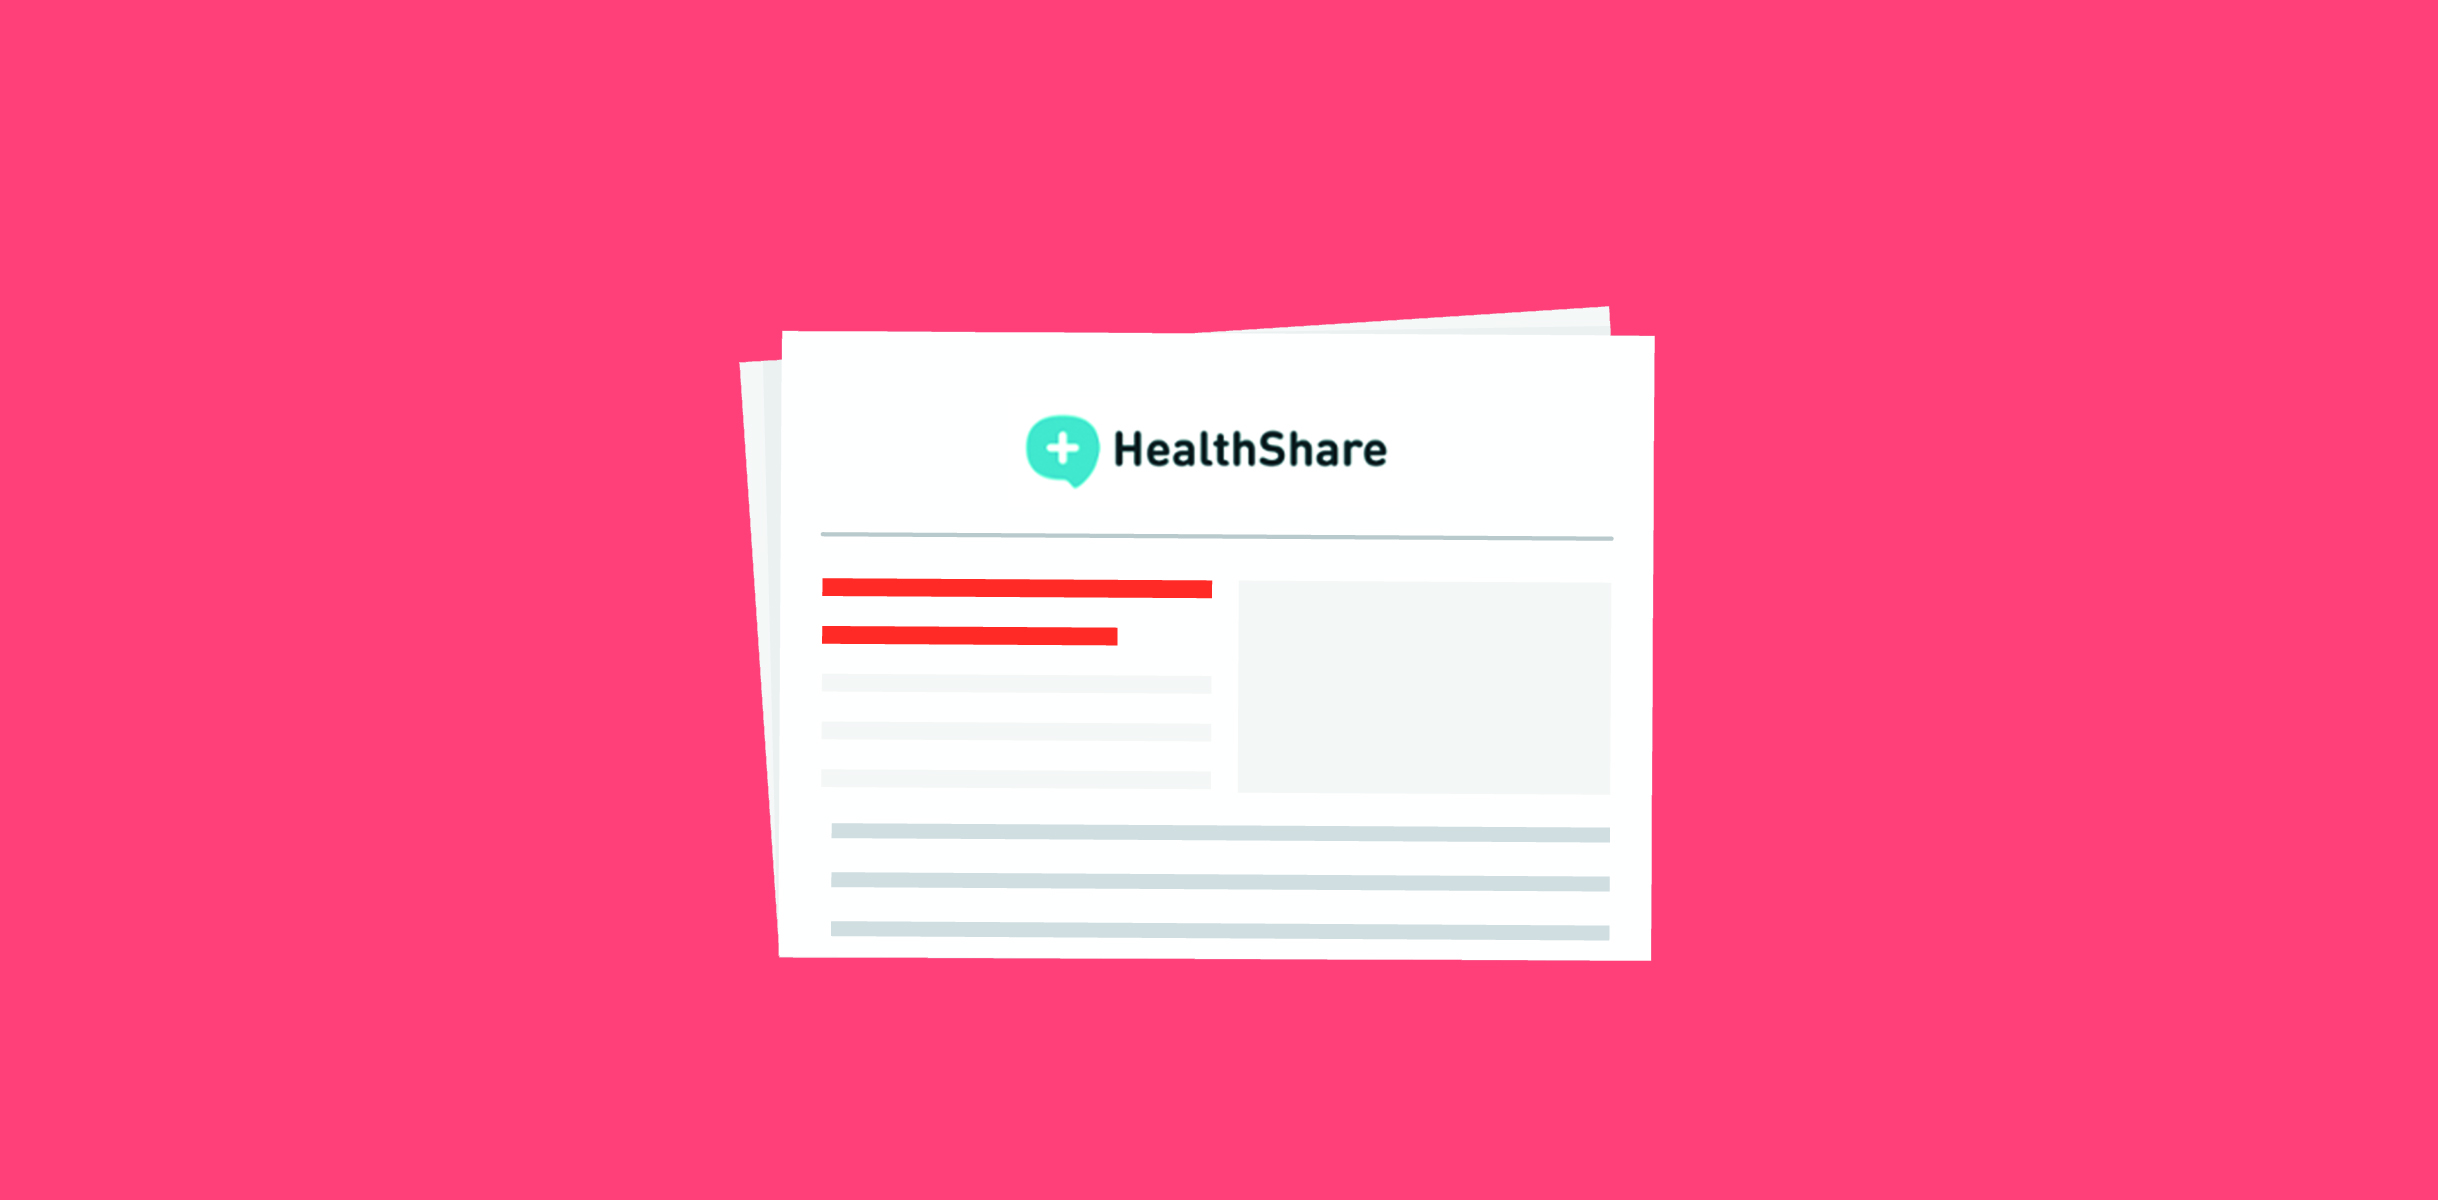 Fairfax Media makes strategic investment in HealthShare